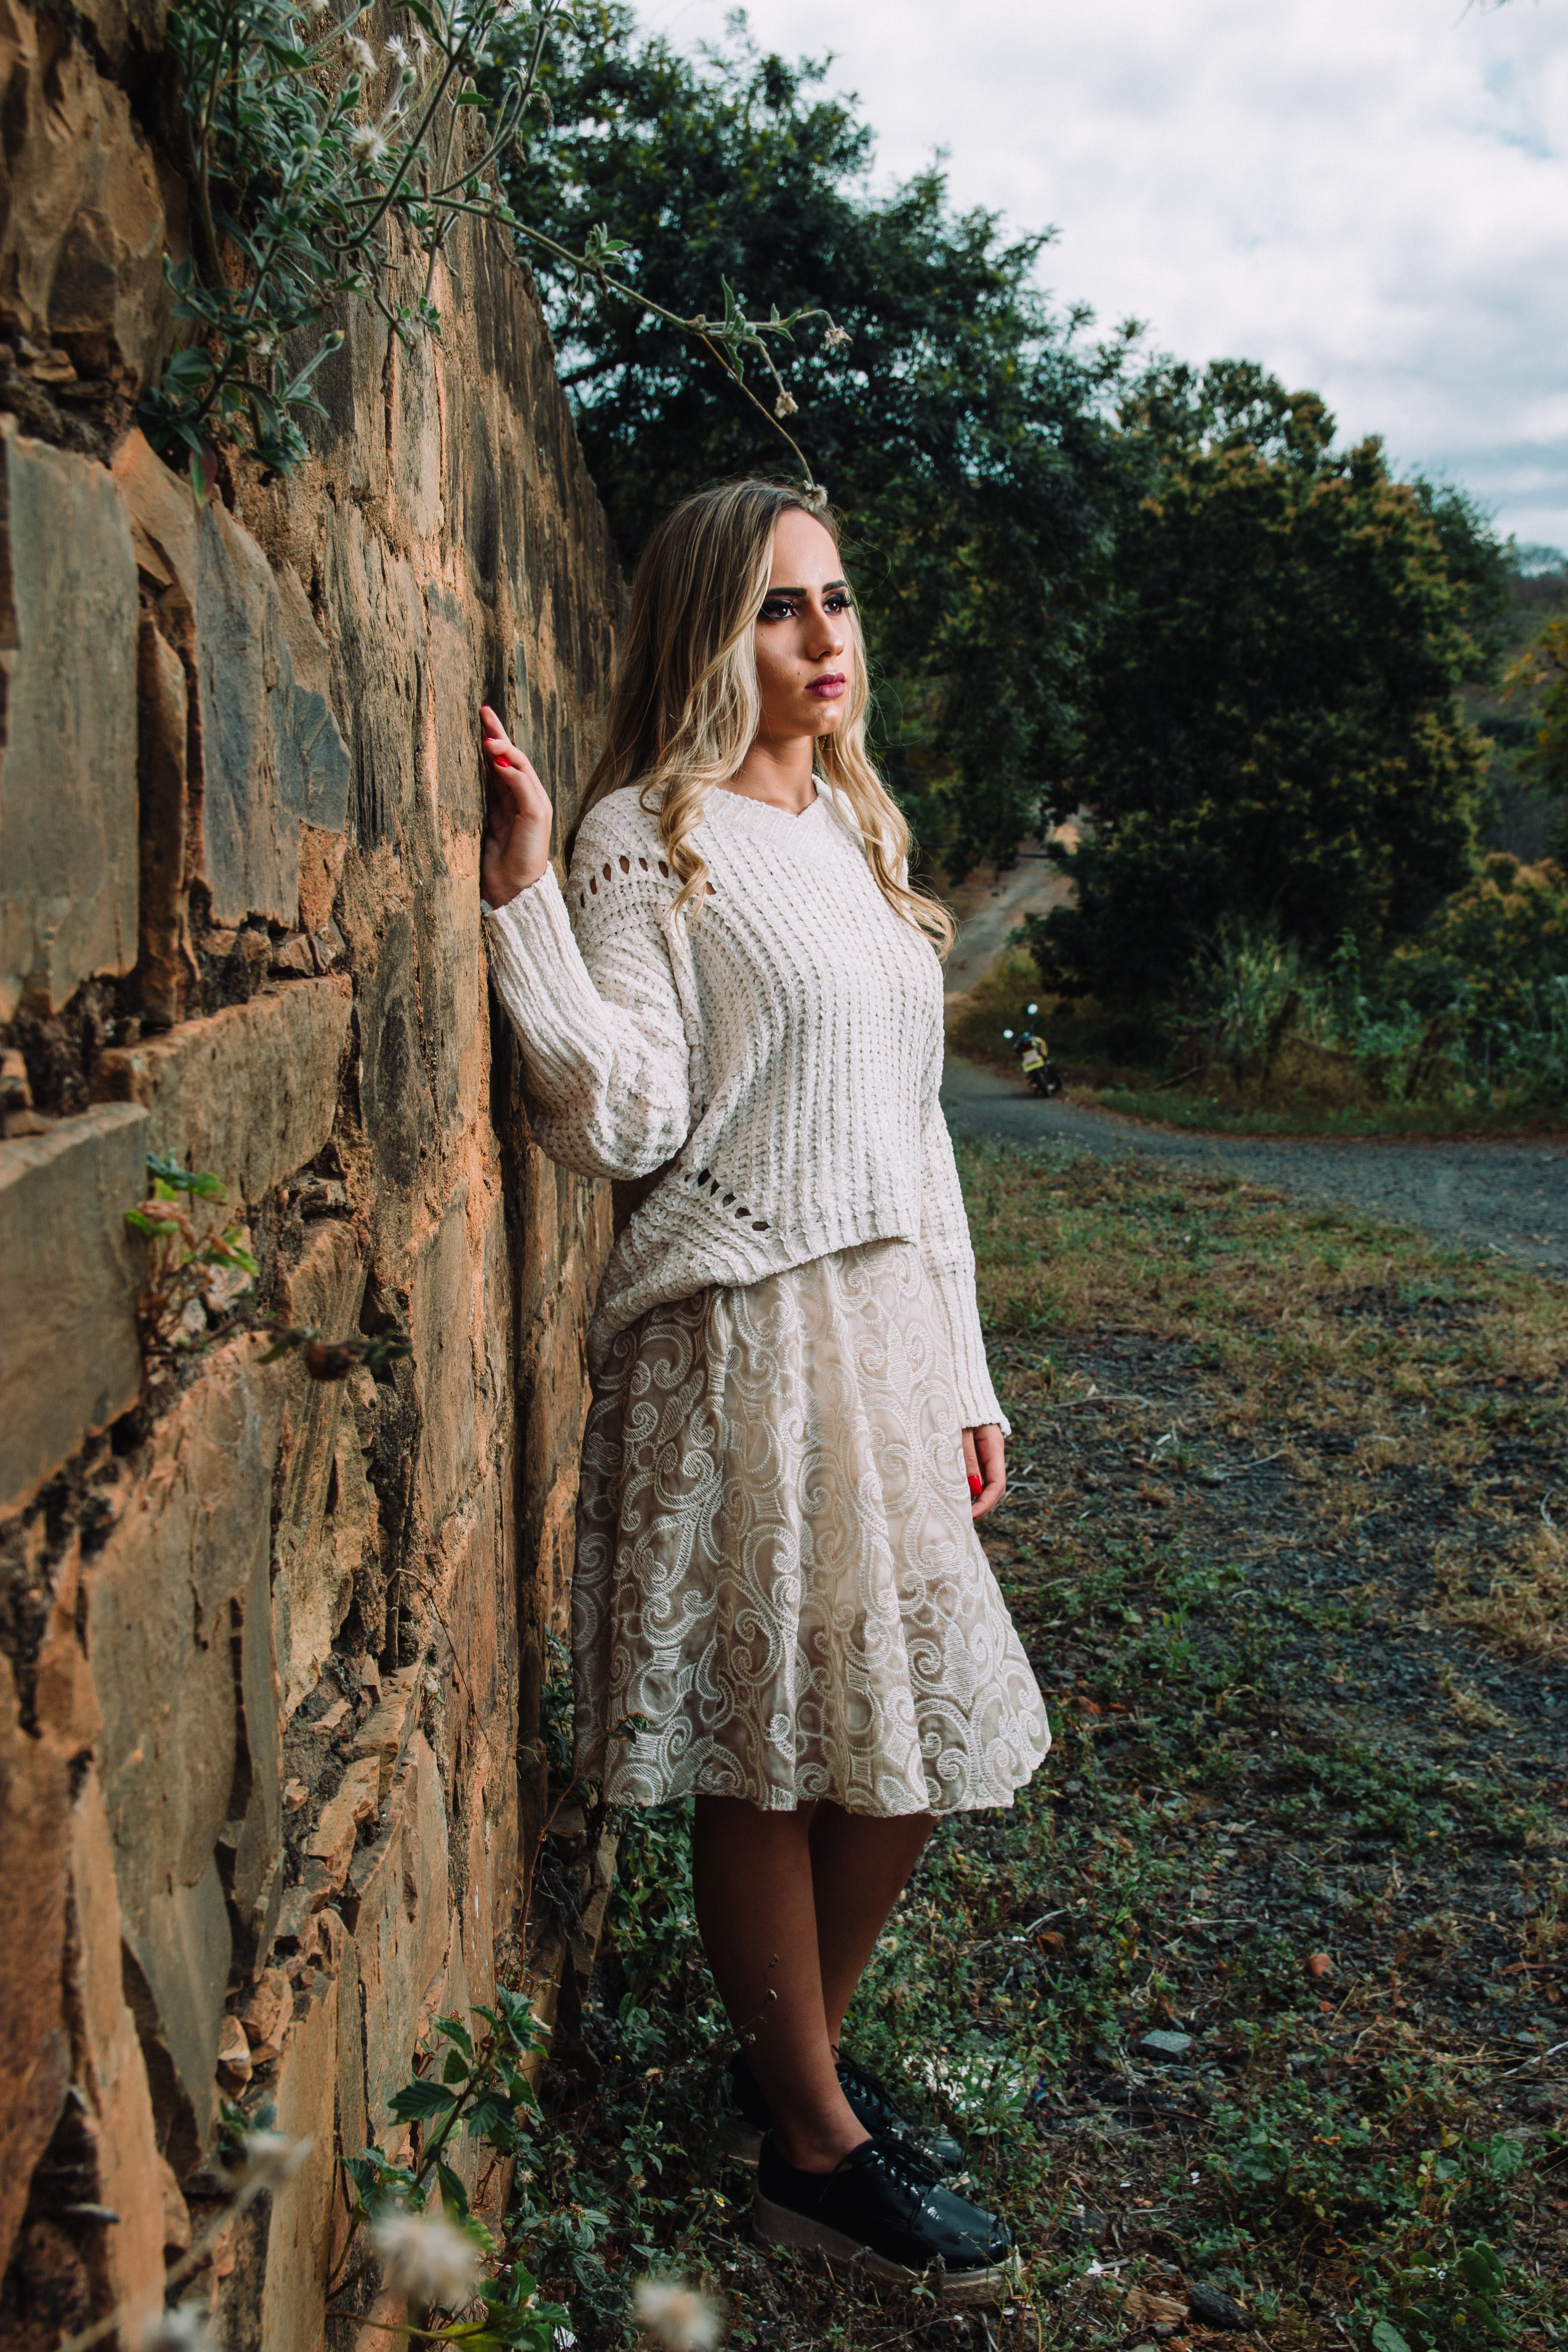 Photo of Woman in White Long-sleeved Shirt Beside Concrete Wall